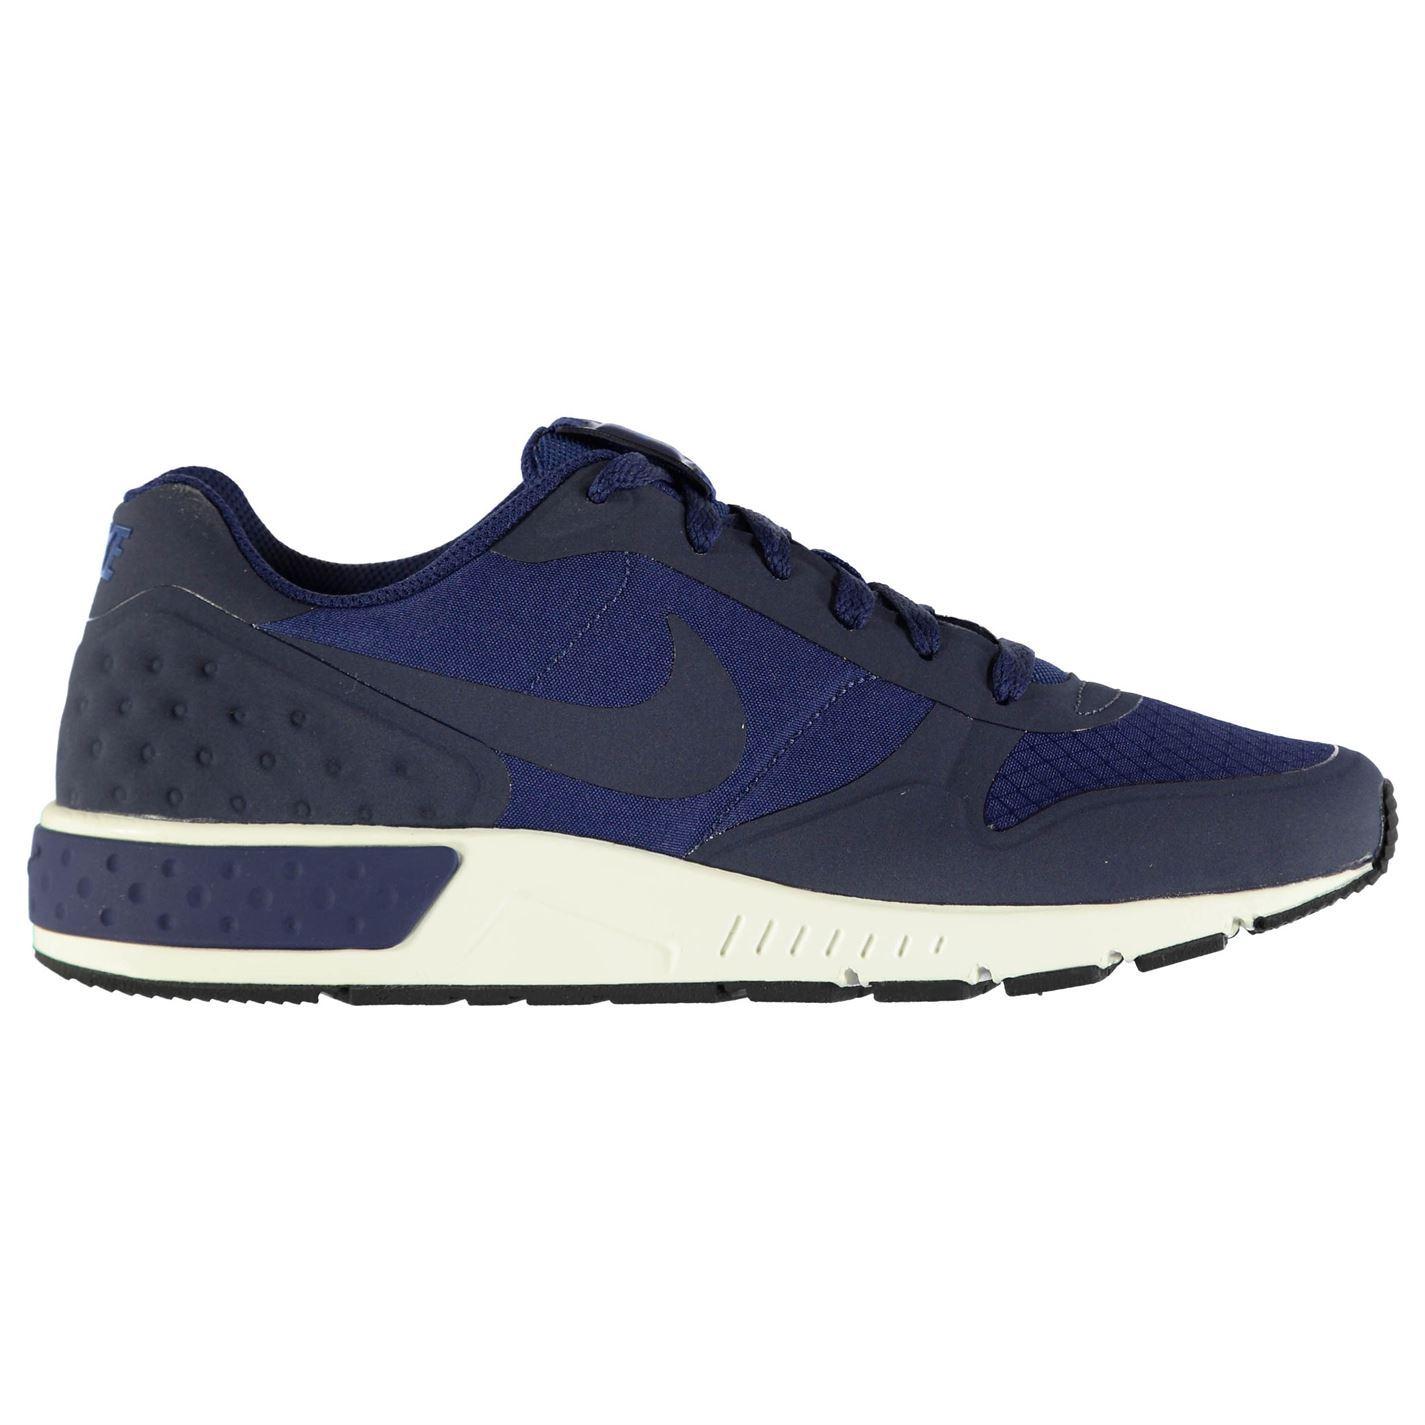 ... Nike Nightgazer Running Shoes Mens Blue/Navy Fitness Sports Trainers  Sneakers ...